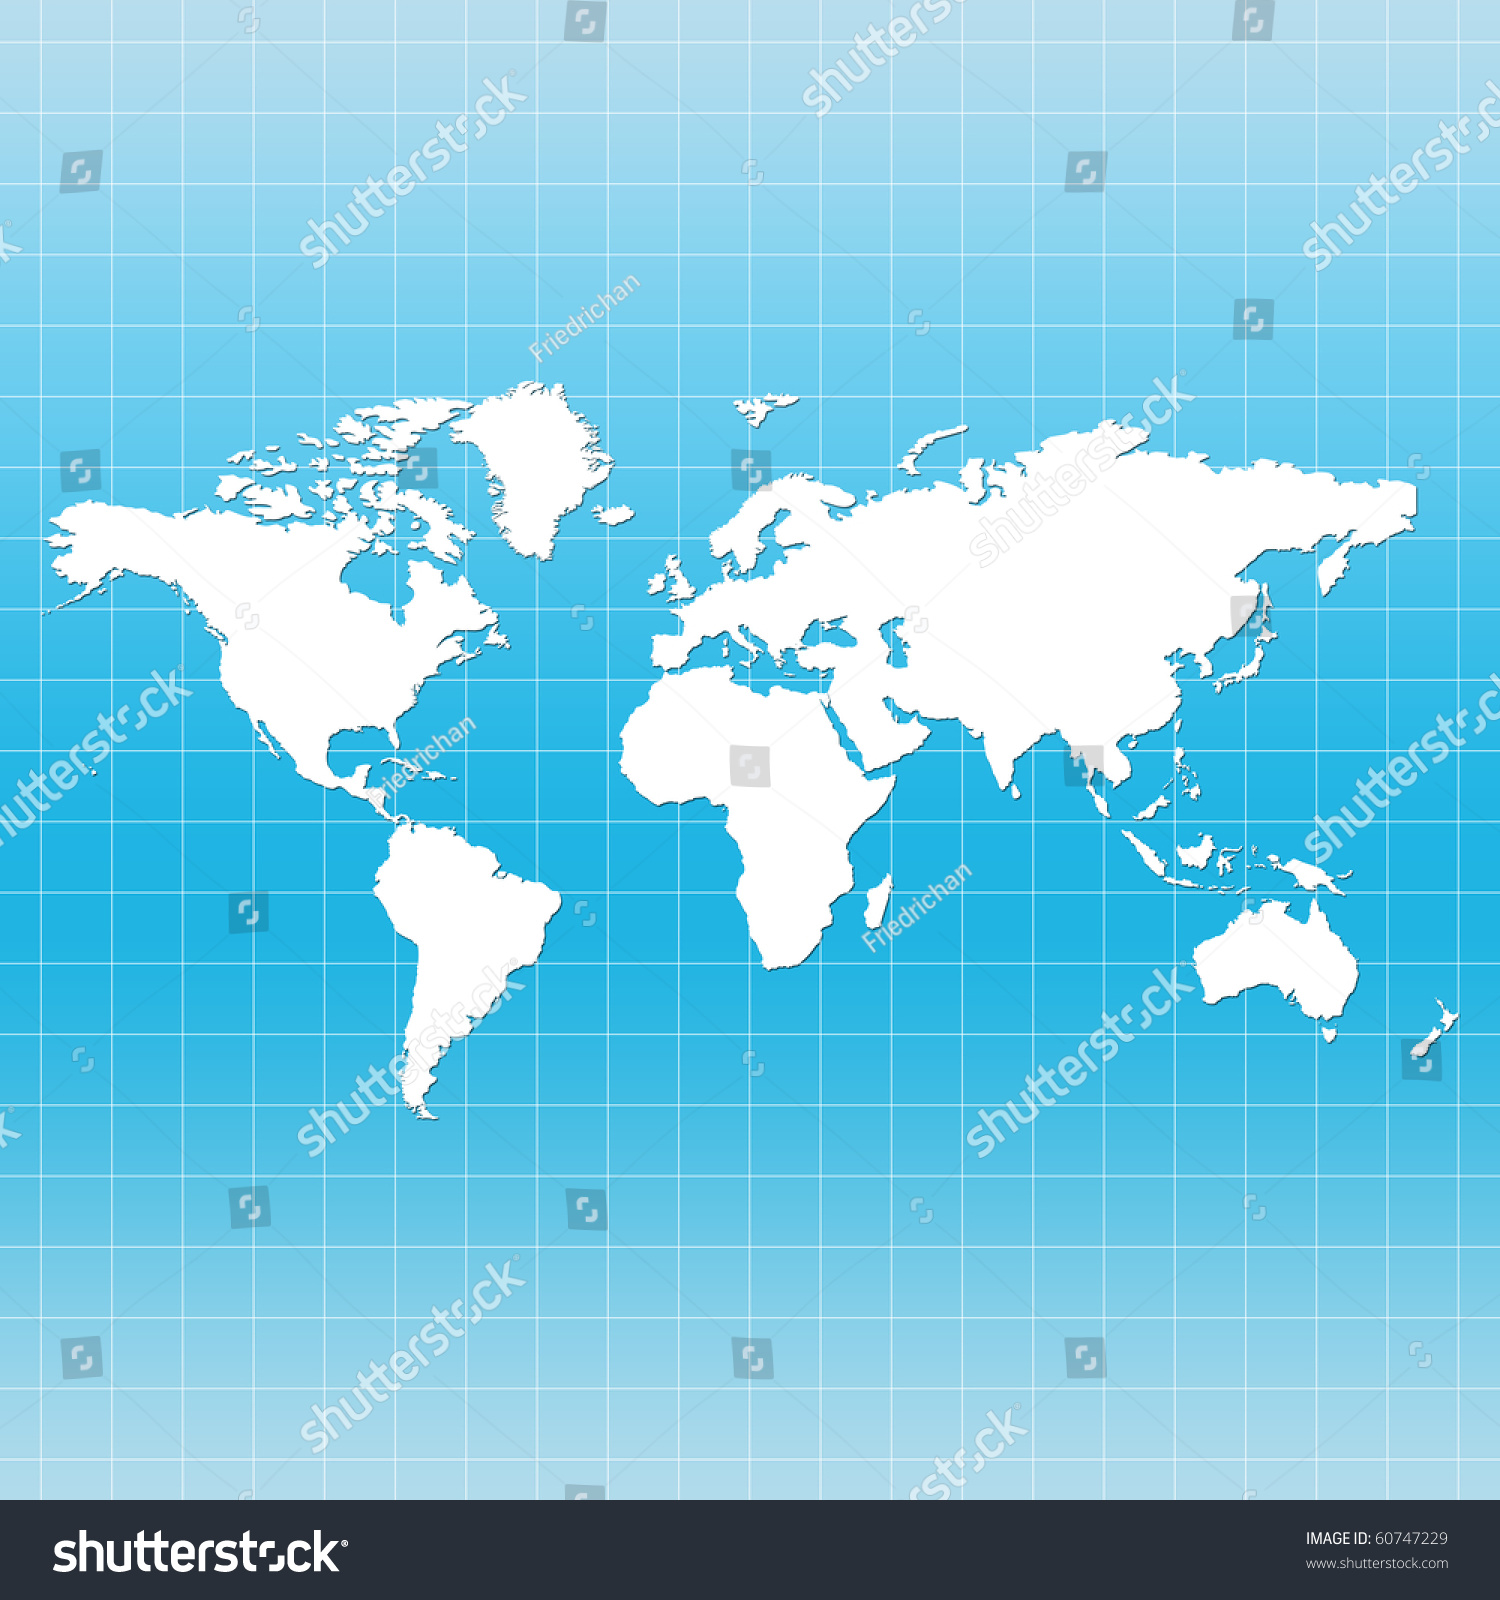 World map on grid blue color stock illustration 60747229 shutterstock gumiabroncs Gallery